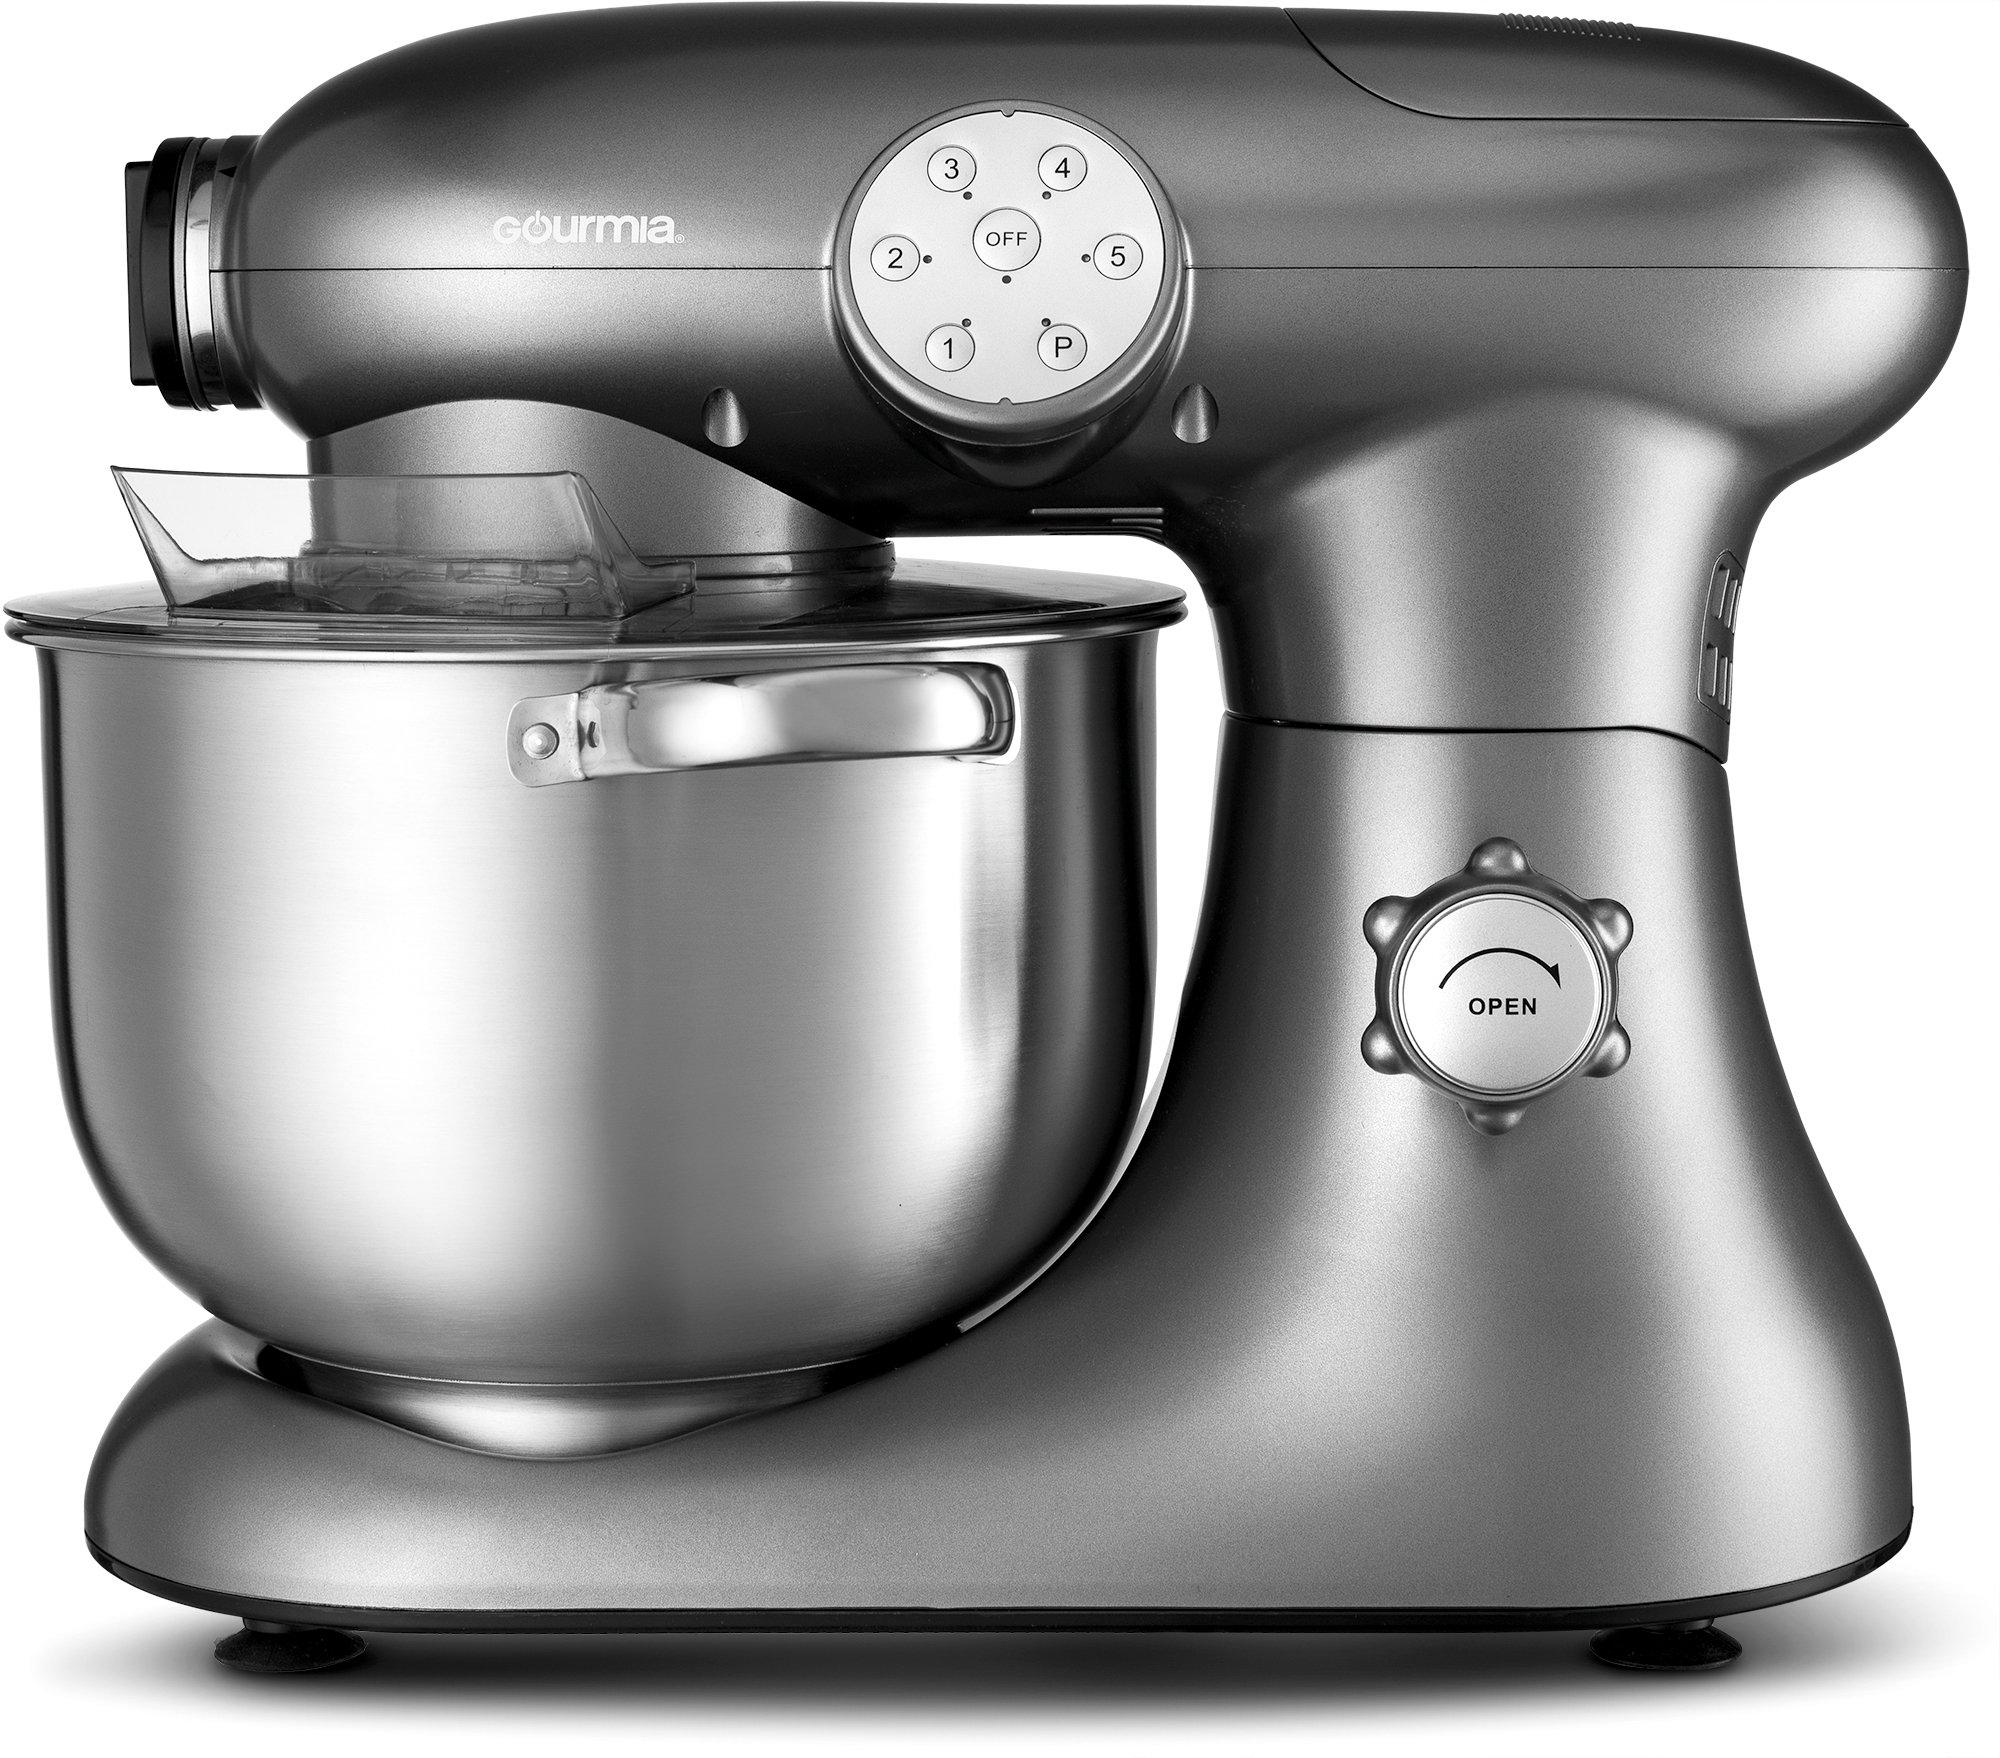 Gourmia EP700 7-Quart 6 Speed Stand Mixer, Planetery Action with Stainless Steel Bowl by Gourmia (Image #2)